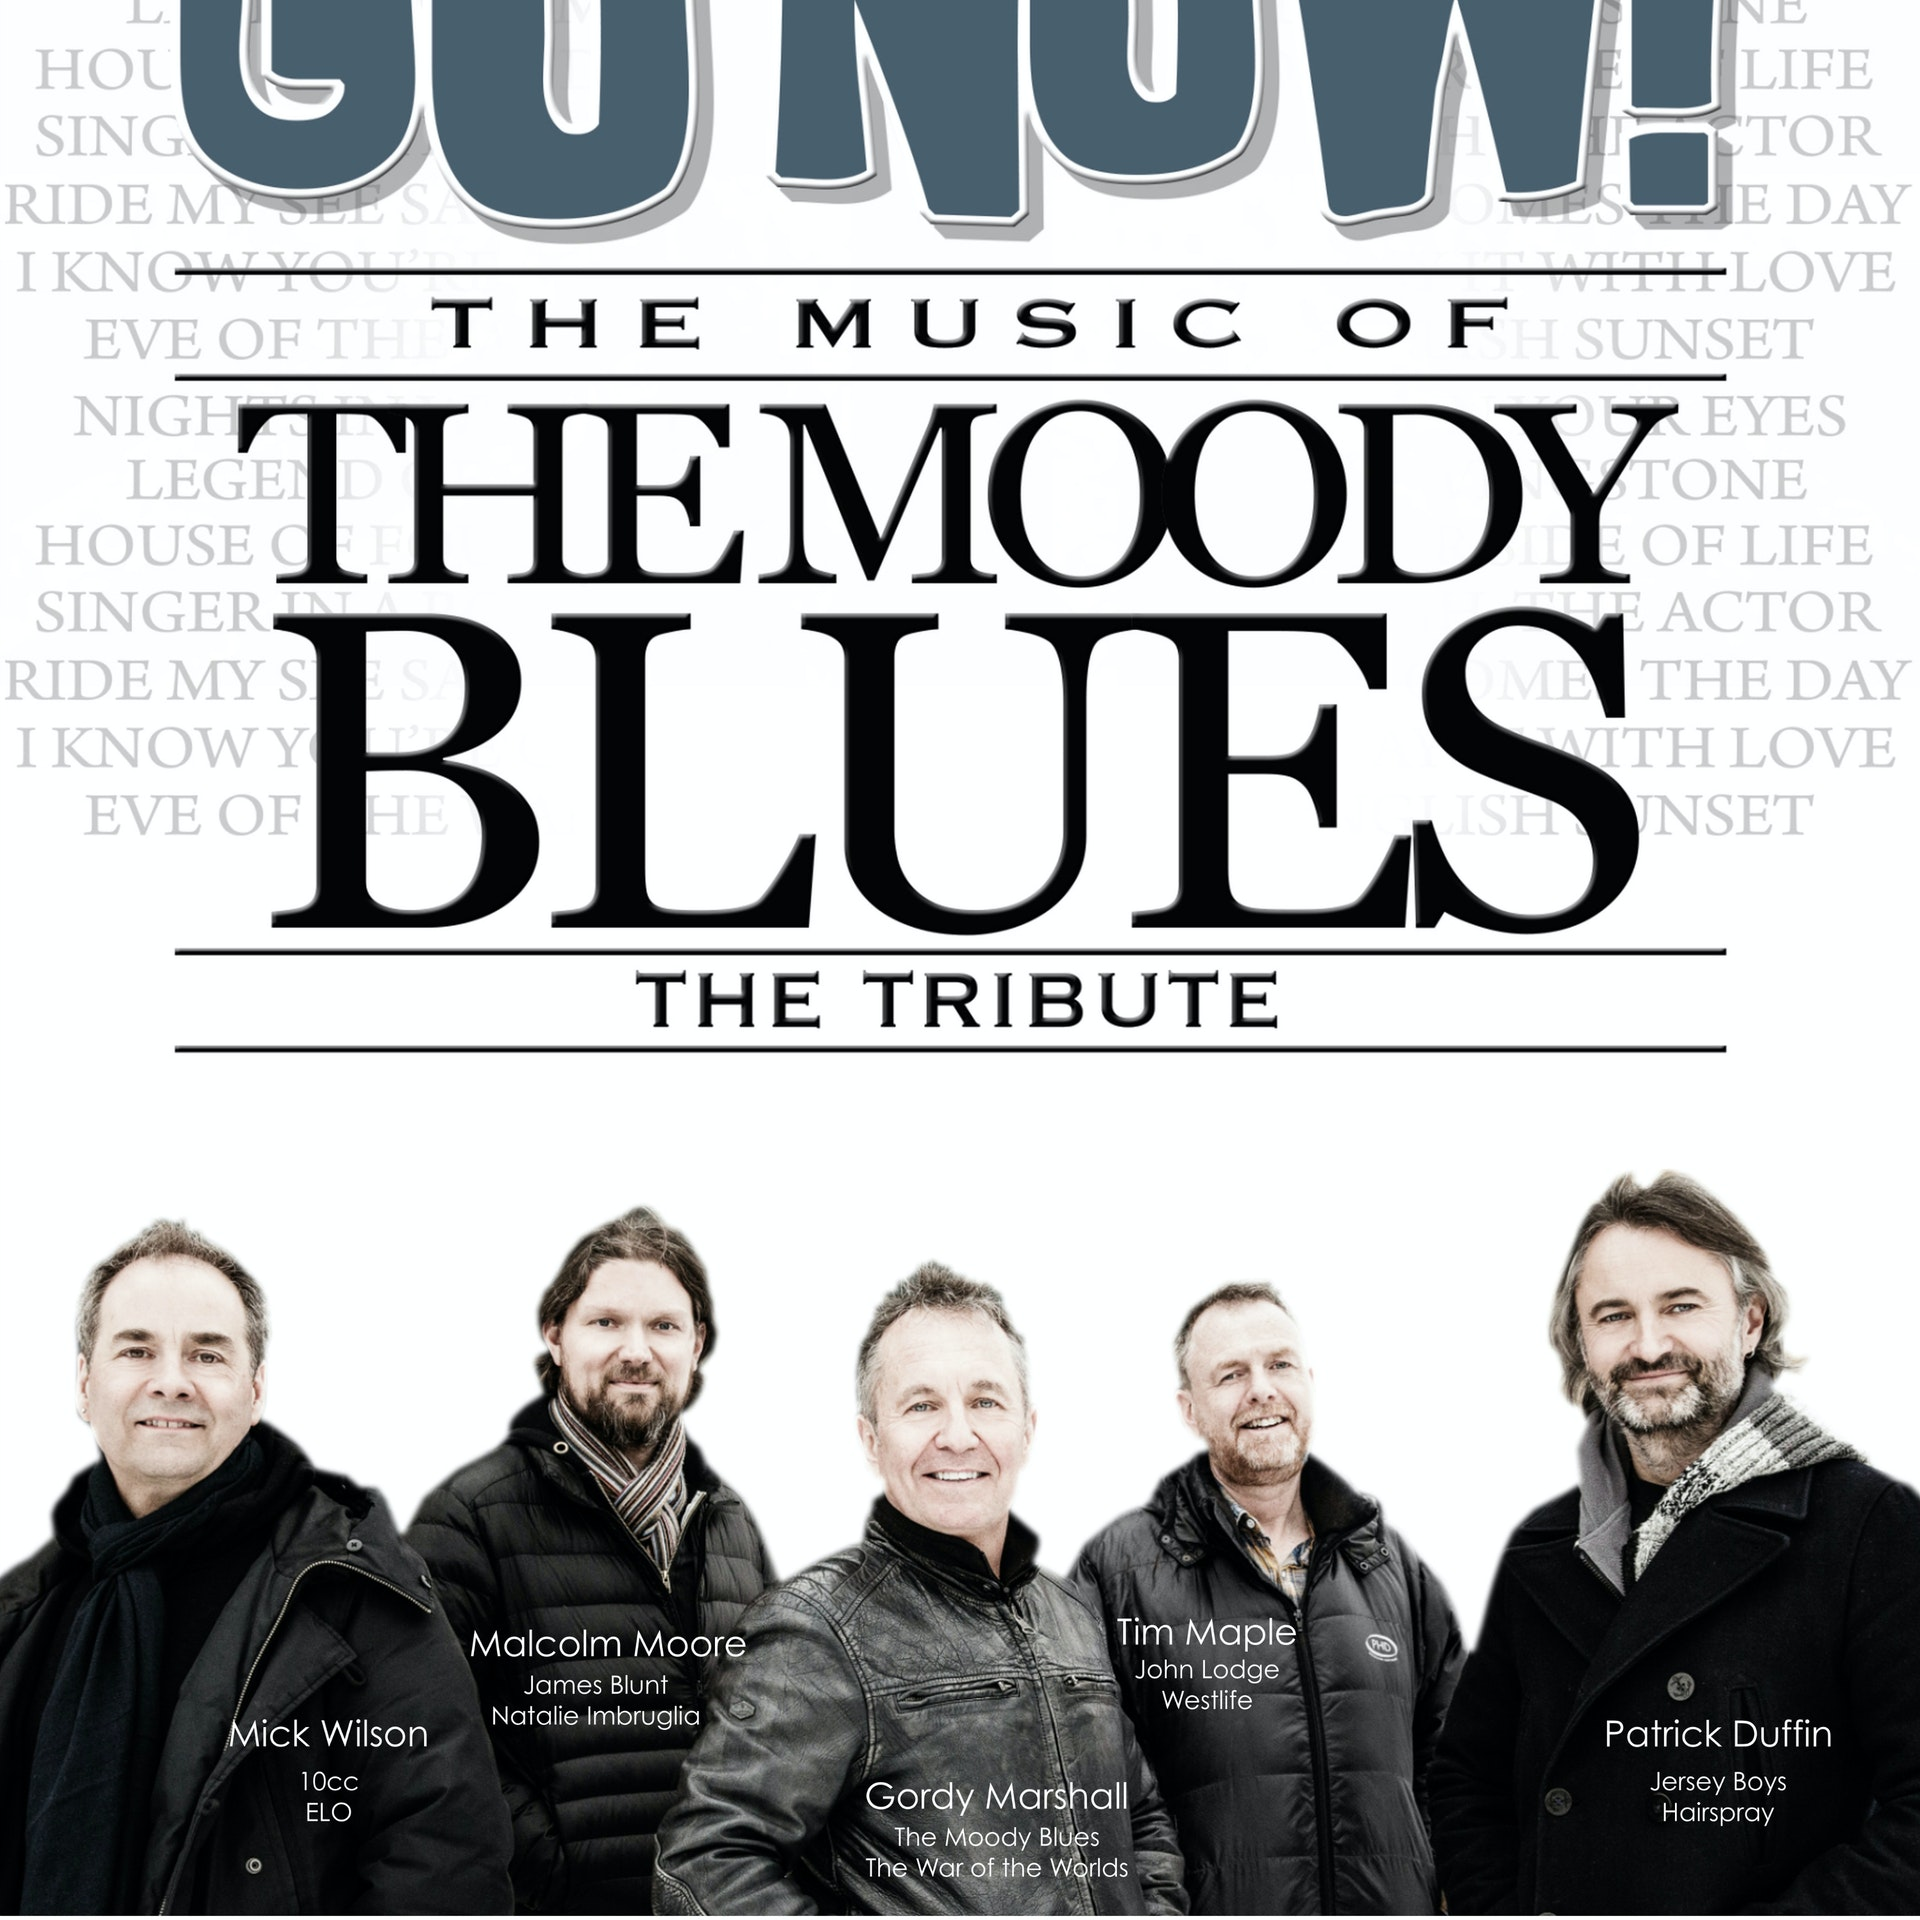 Moody Blues Tour 2020.Go Now The Music Of The Moody Blues Stockton On Tees Tickets Arc 23rd Apr 2020